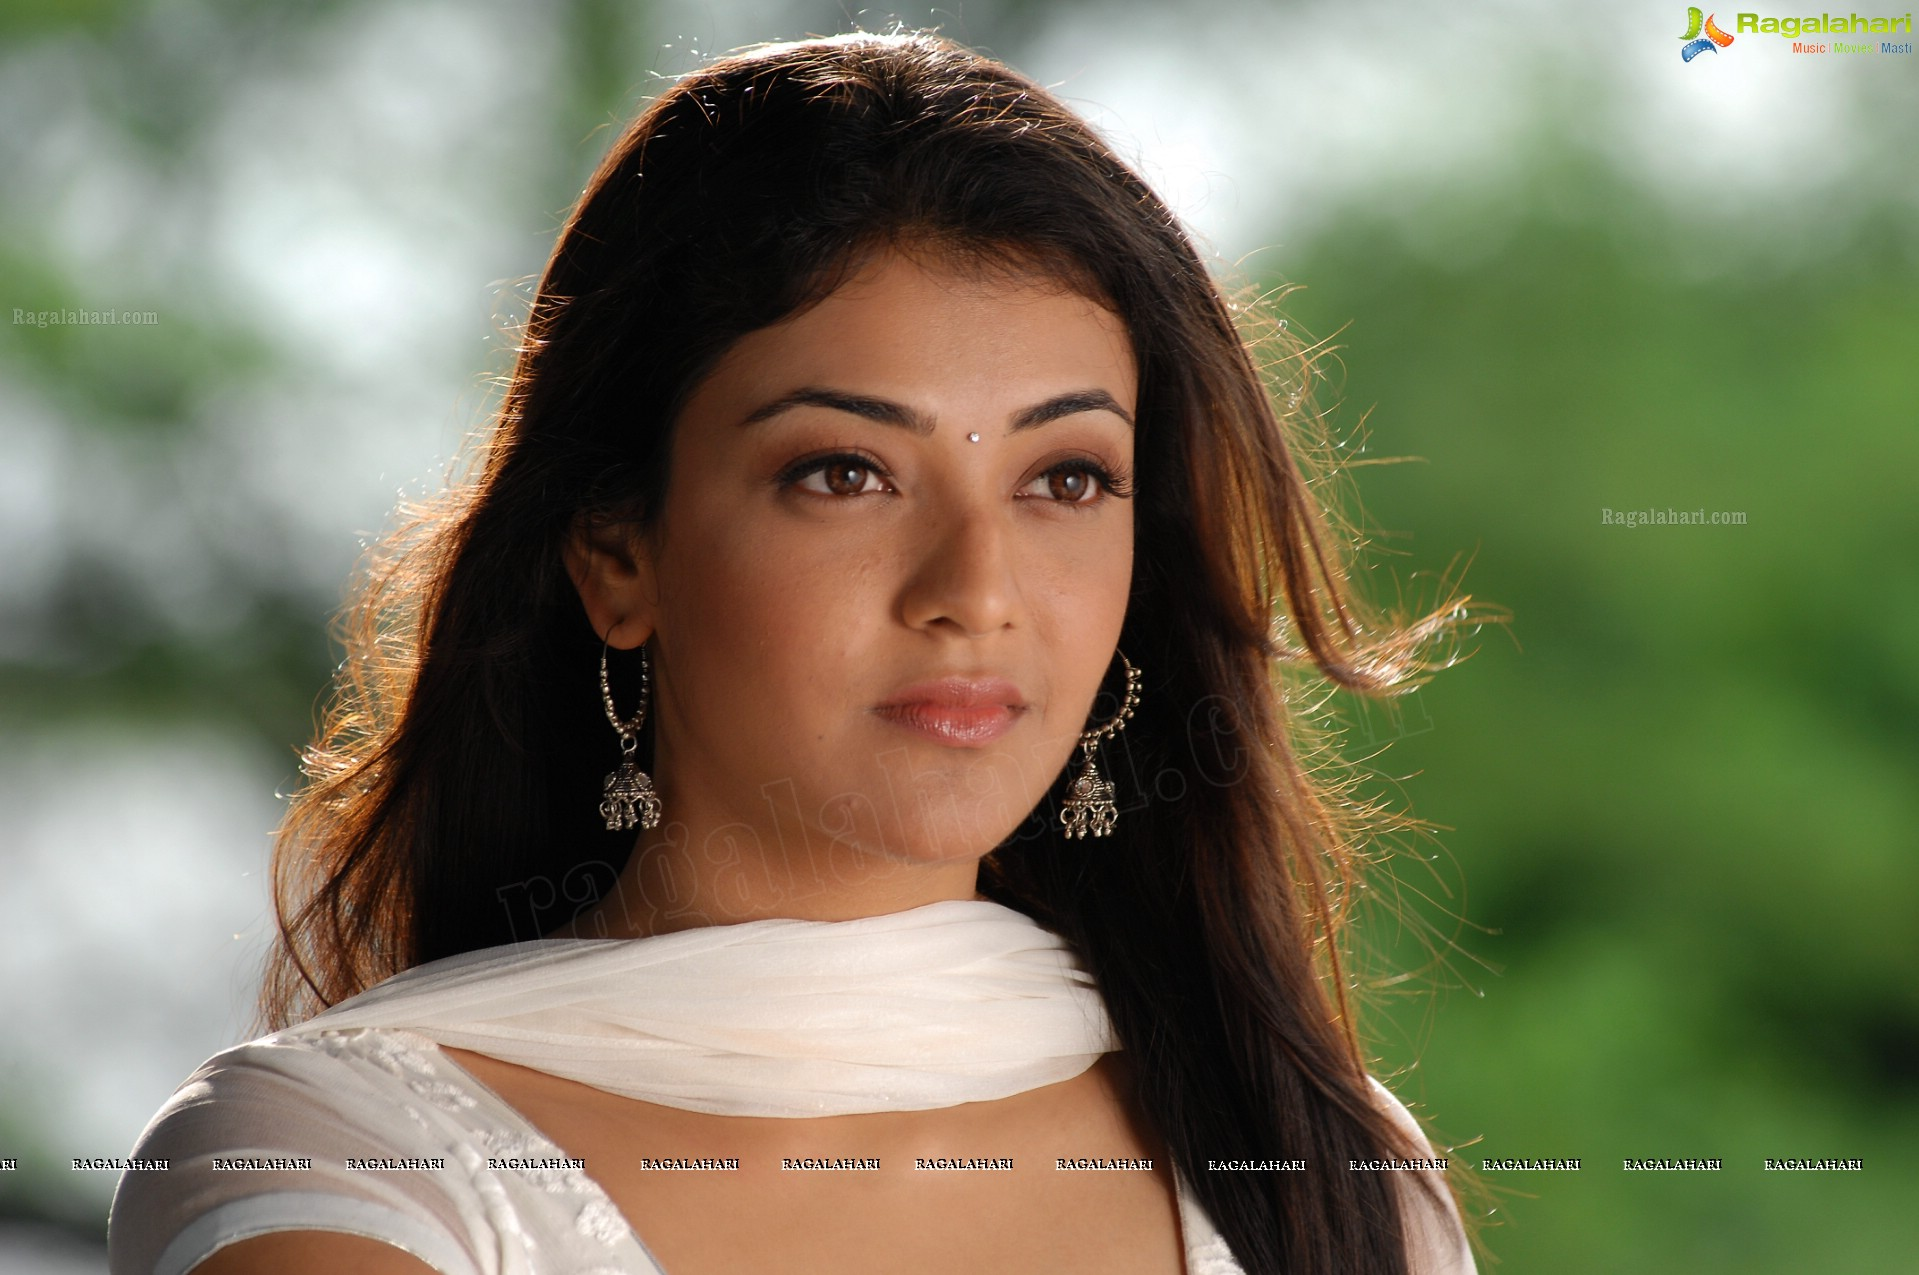 kajal agarwal (hd) image 14 | tollywood heroines wallpapers ,images